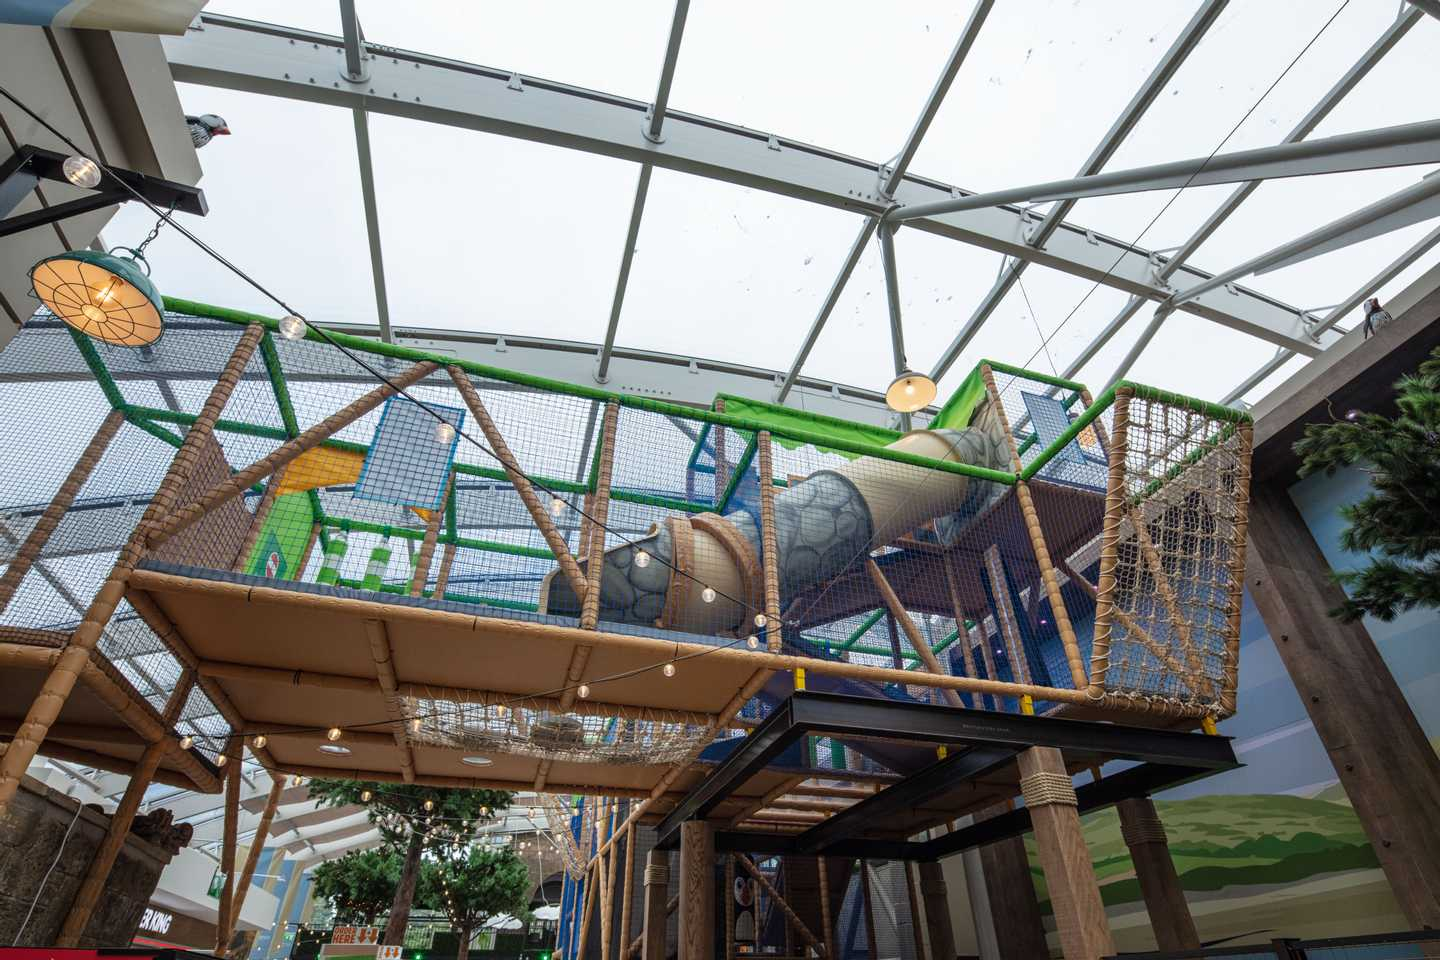 The soft play area